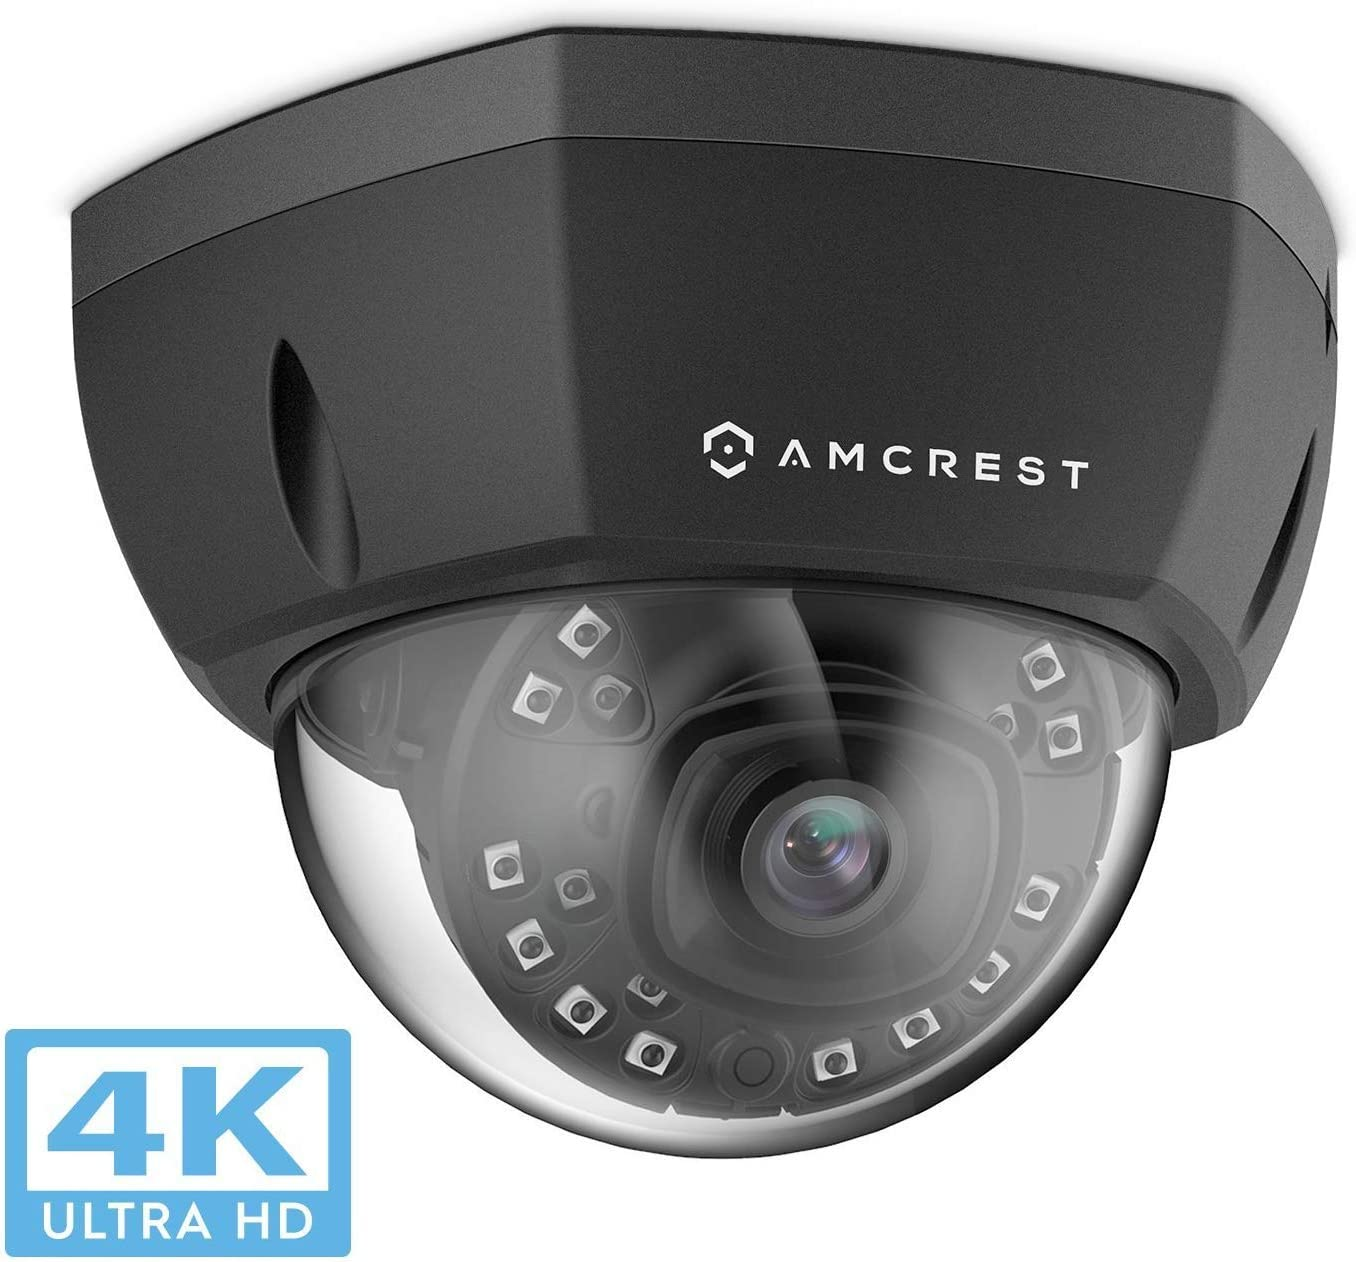 Amcrest 4K Outdoor POE IP Camera, UltraHD 8MP Security Camera, 3840x2160P Resolution, IK10 Vandal Resistant Dome, 2.8mm Lens, IP67 Weatherproof Security, Cloud MicroSD Recording IP8M-2493EB